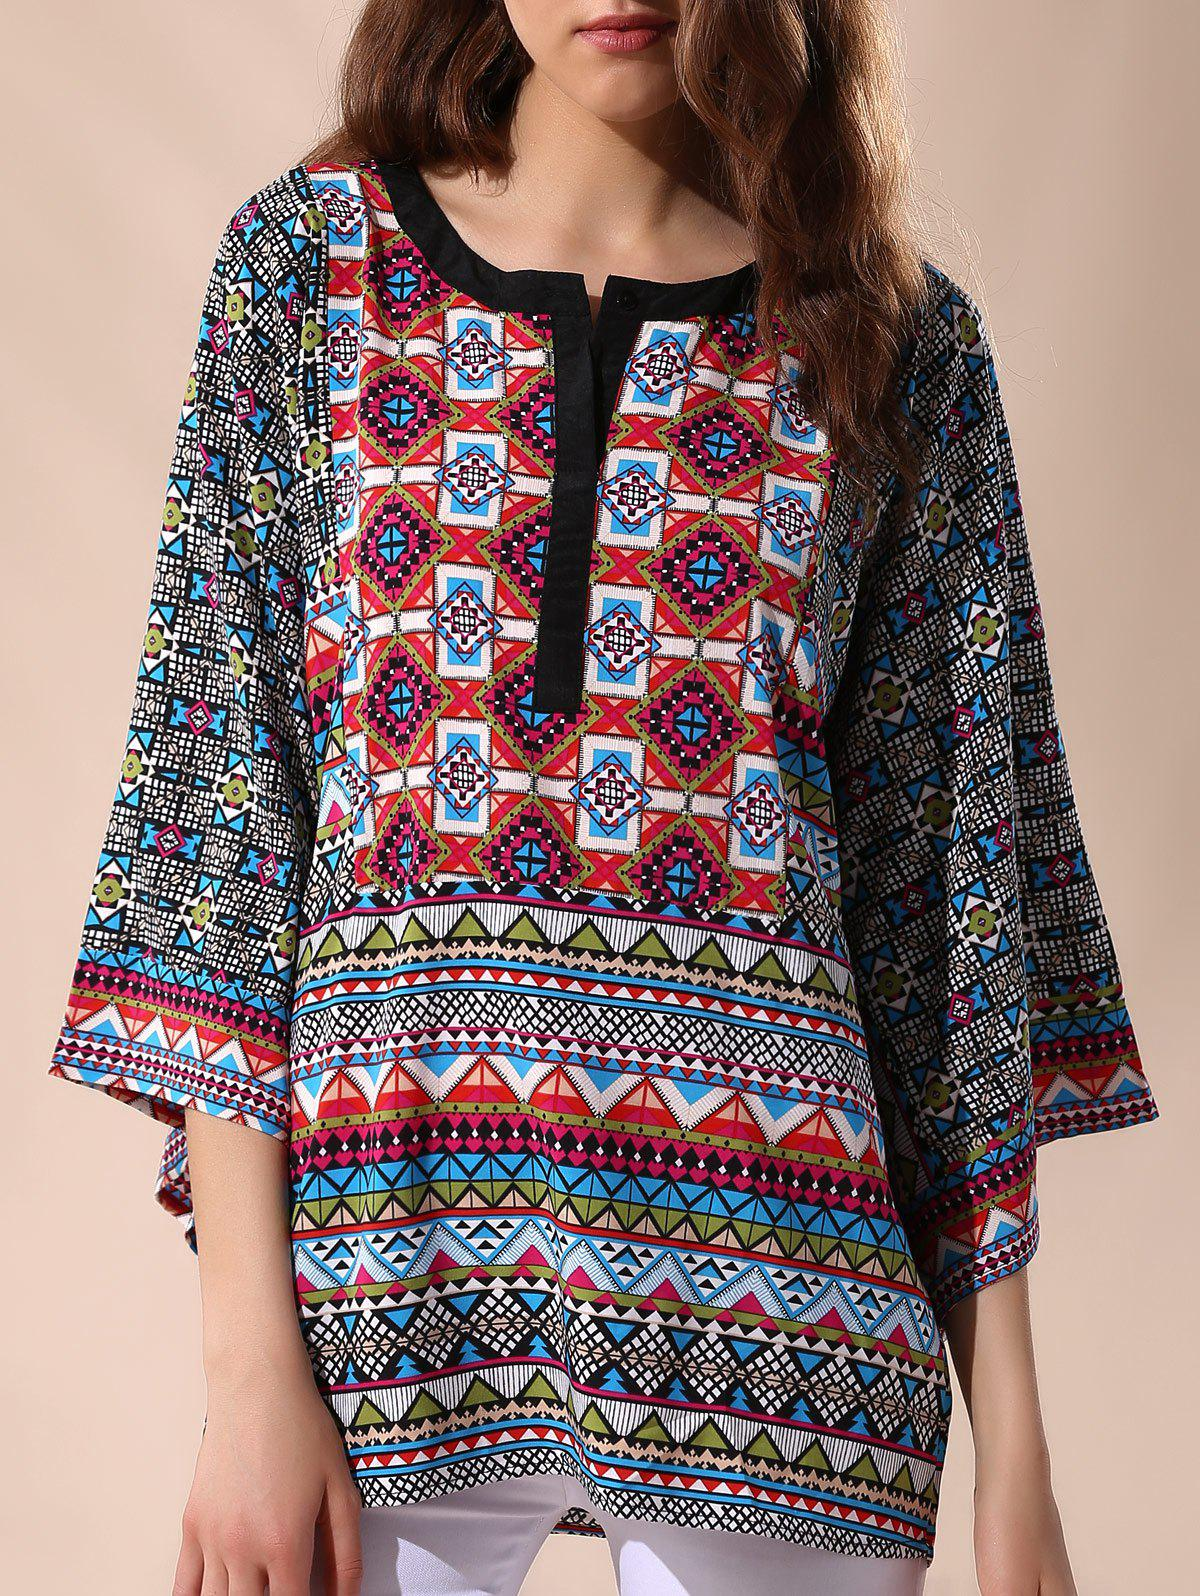 Casual 3/4 Sleeve Round Neck Tribal Print Women's Blouse - COLORMIX S